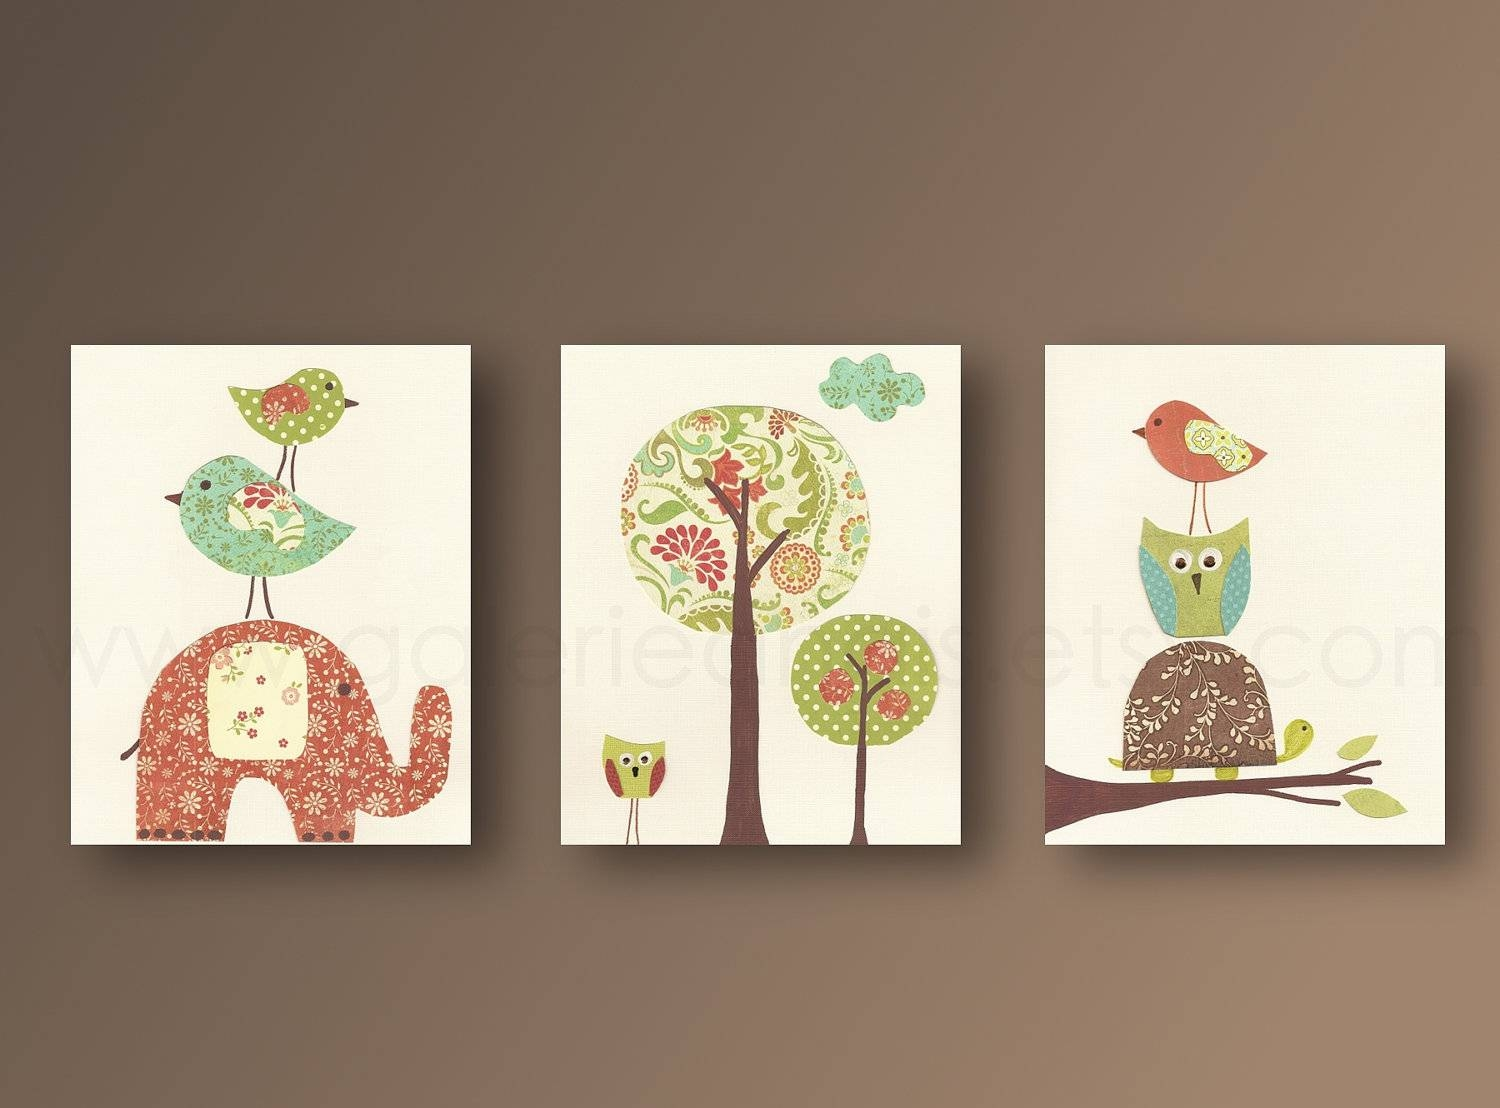 Nursery Wall Art Nursery Art Baby Nursery Kids Room Decor Owl with Newest Nursery Wall Art